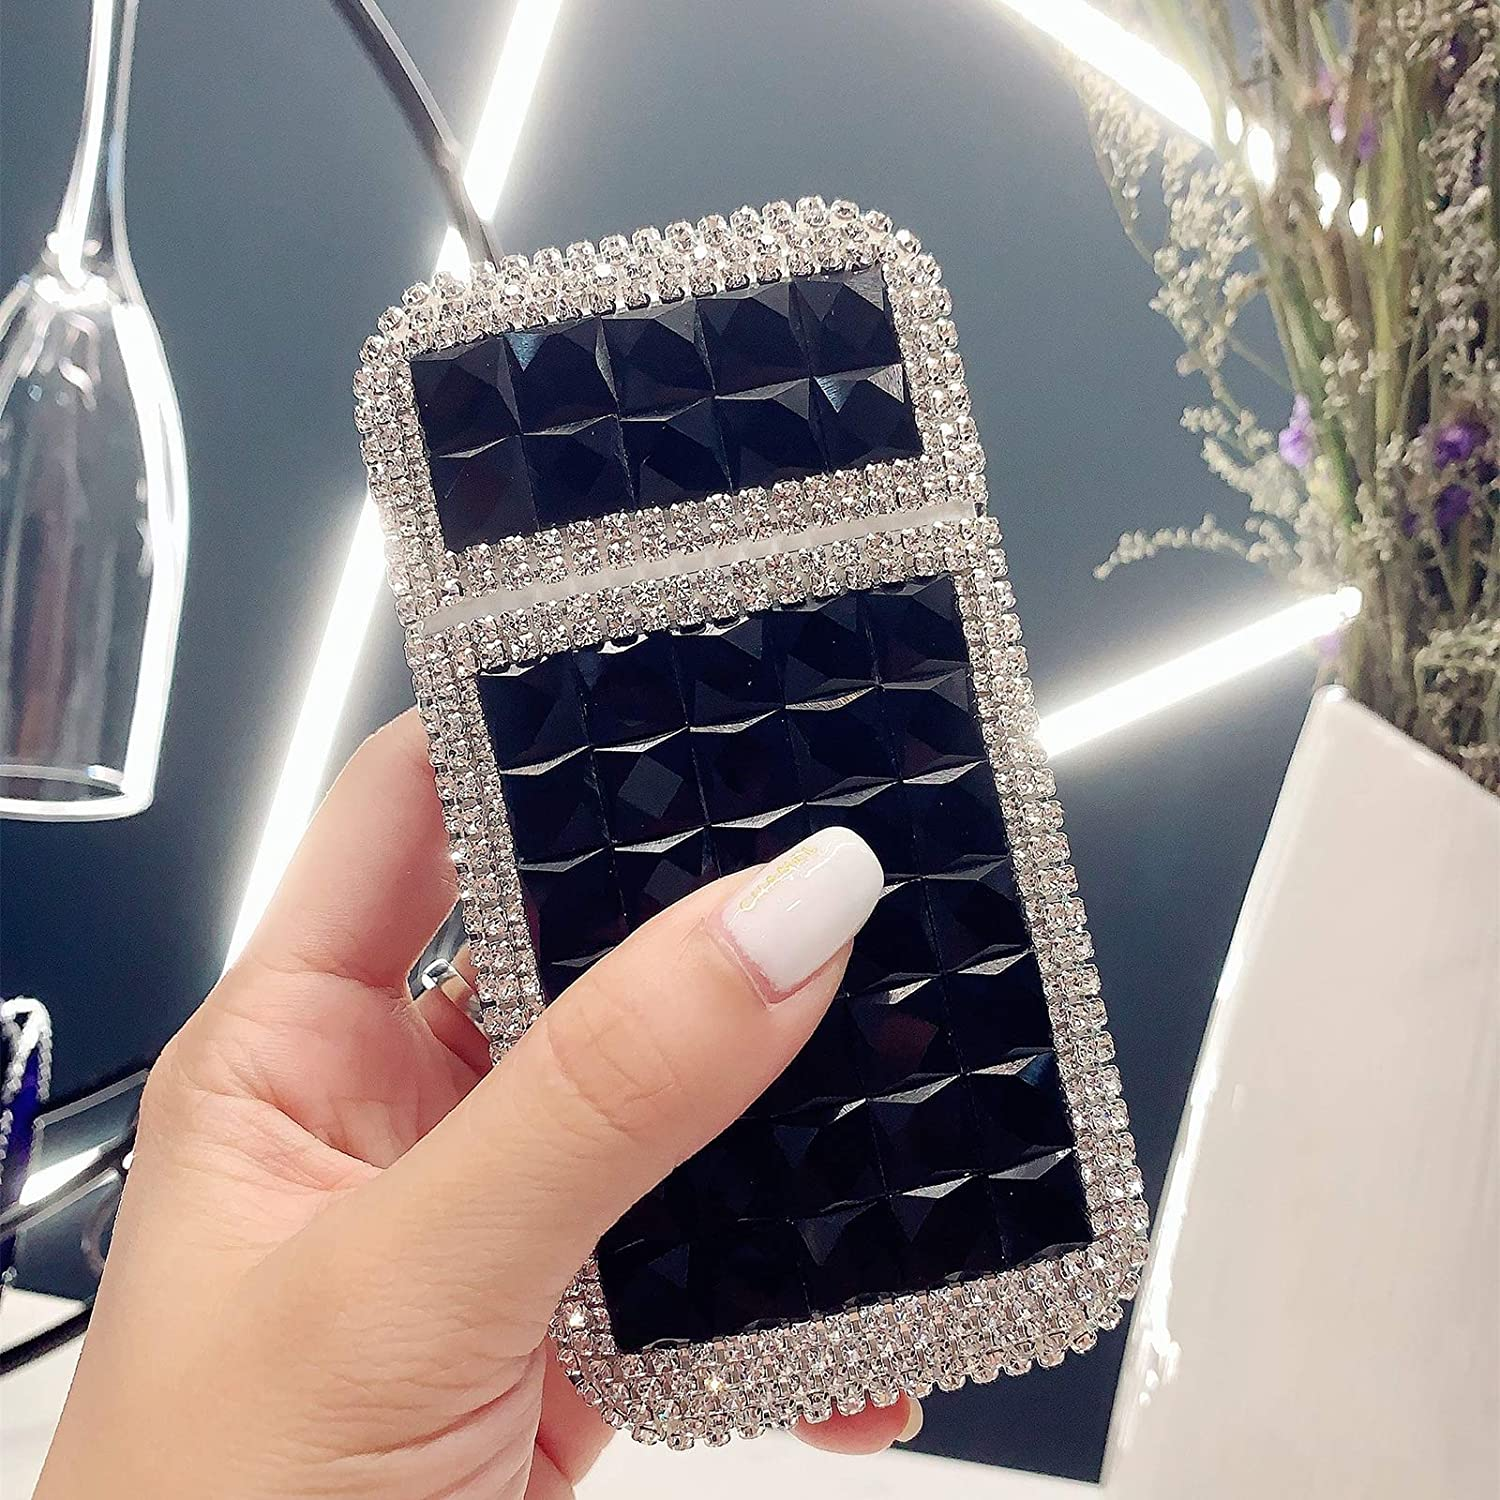 BNMY Cigarette Case for Women Cigarettes Portable 20 Free shipping anywhere in the specialty shop nation B